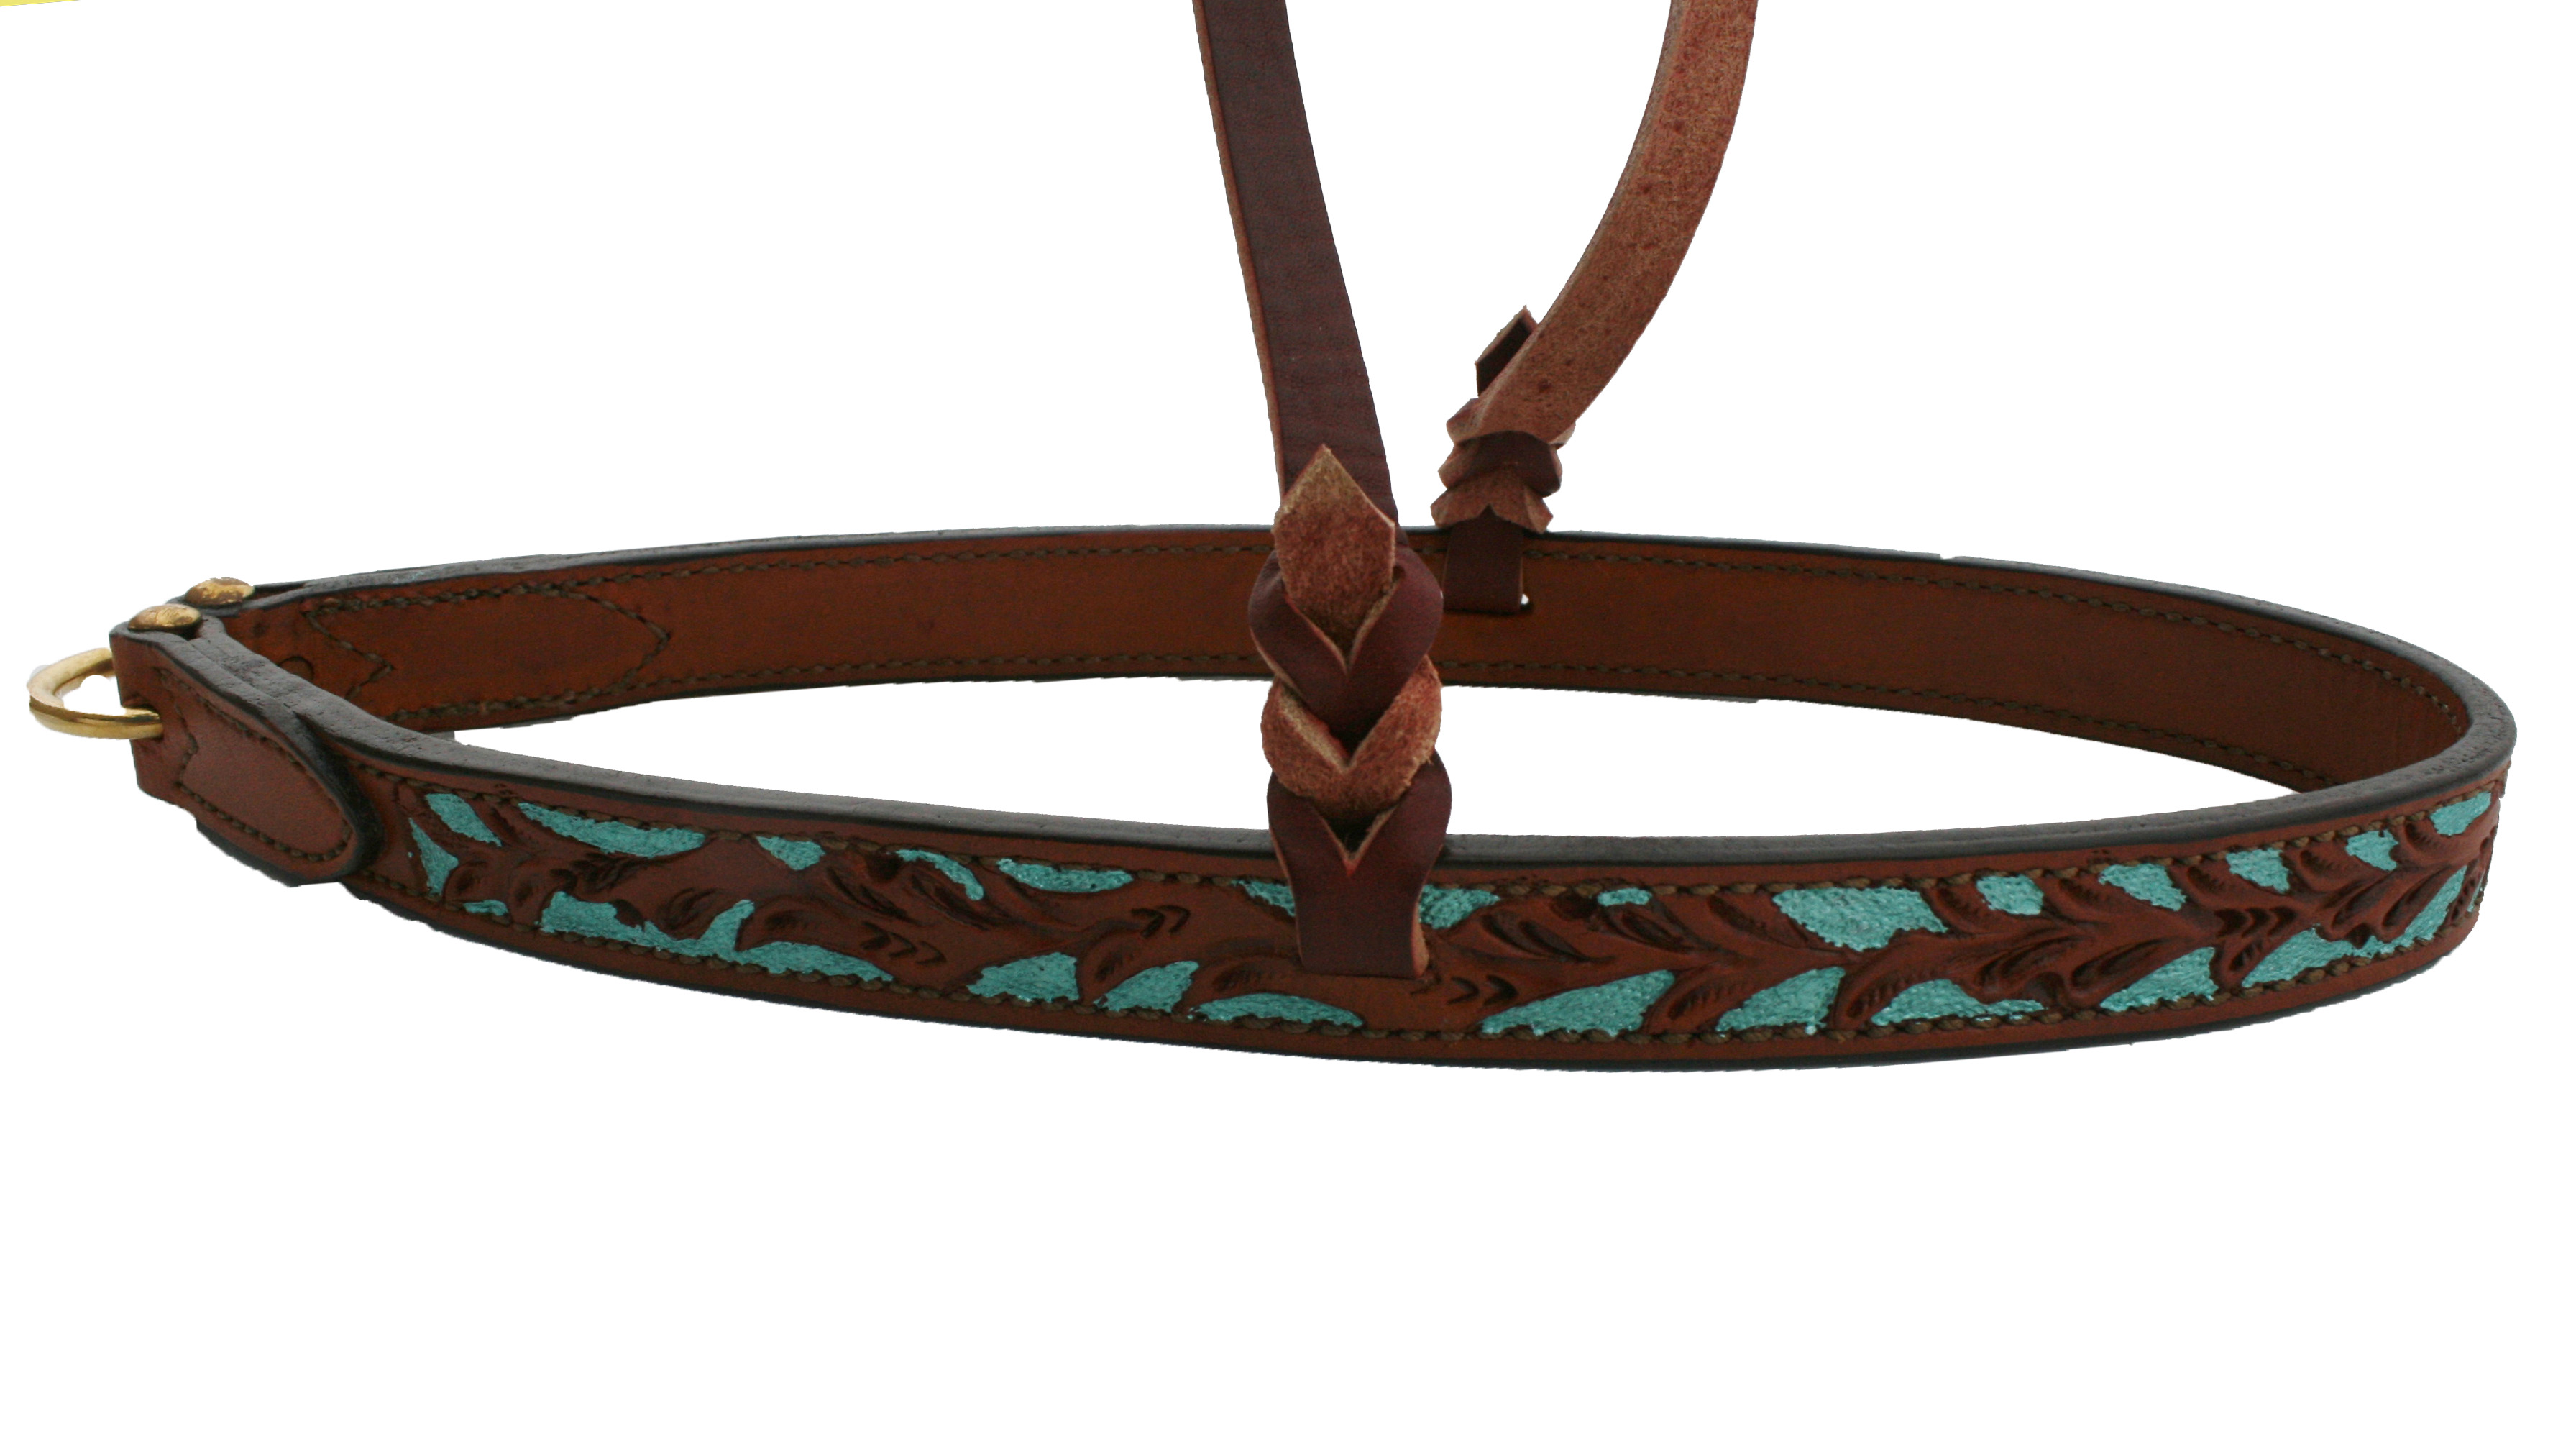 2000-FT NOSEBAND w FLORAL TOOLING, TURQ PAINT